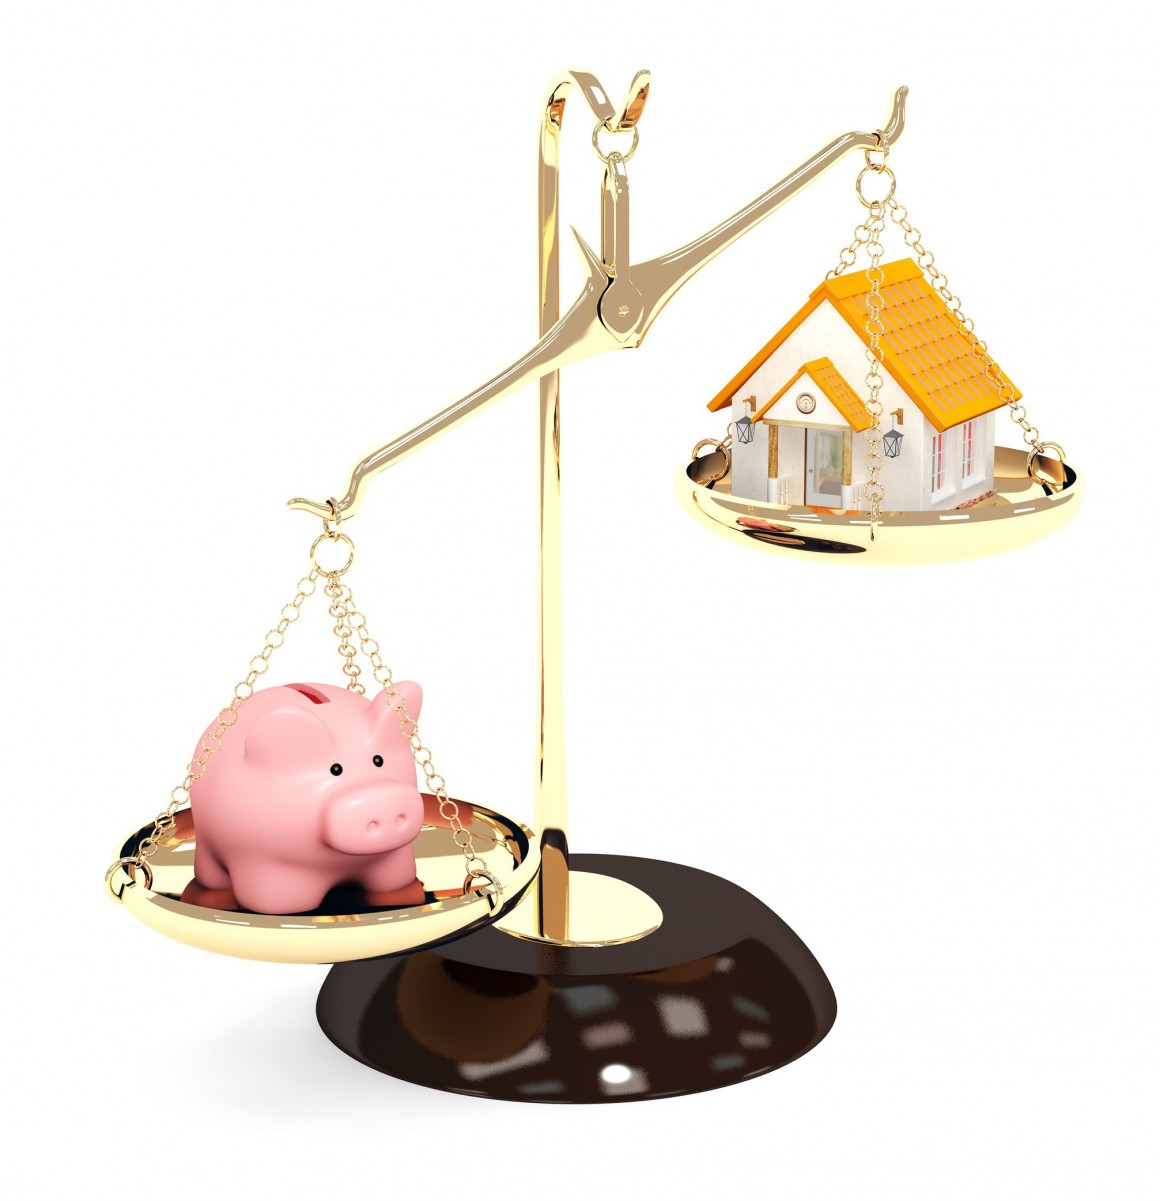 Take the profit from second property